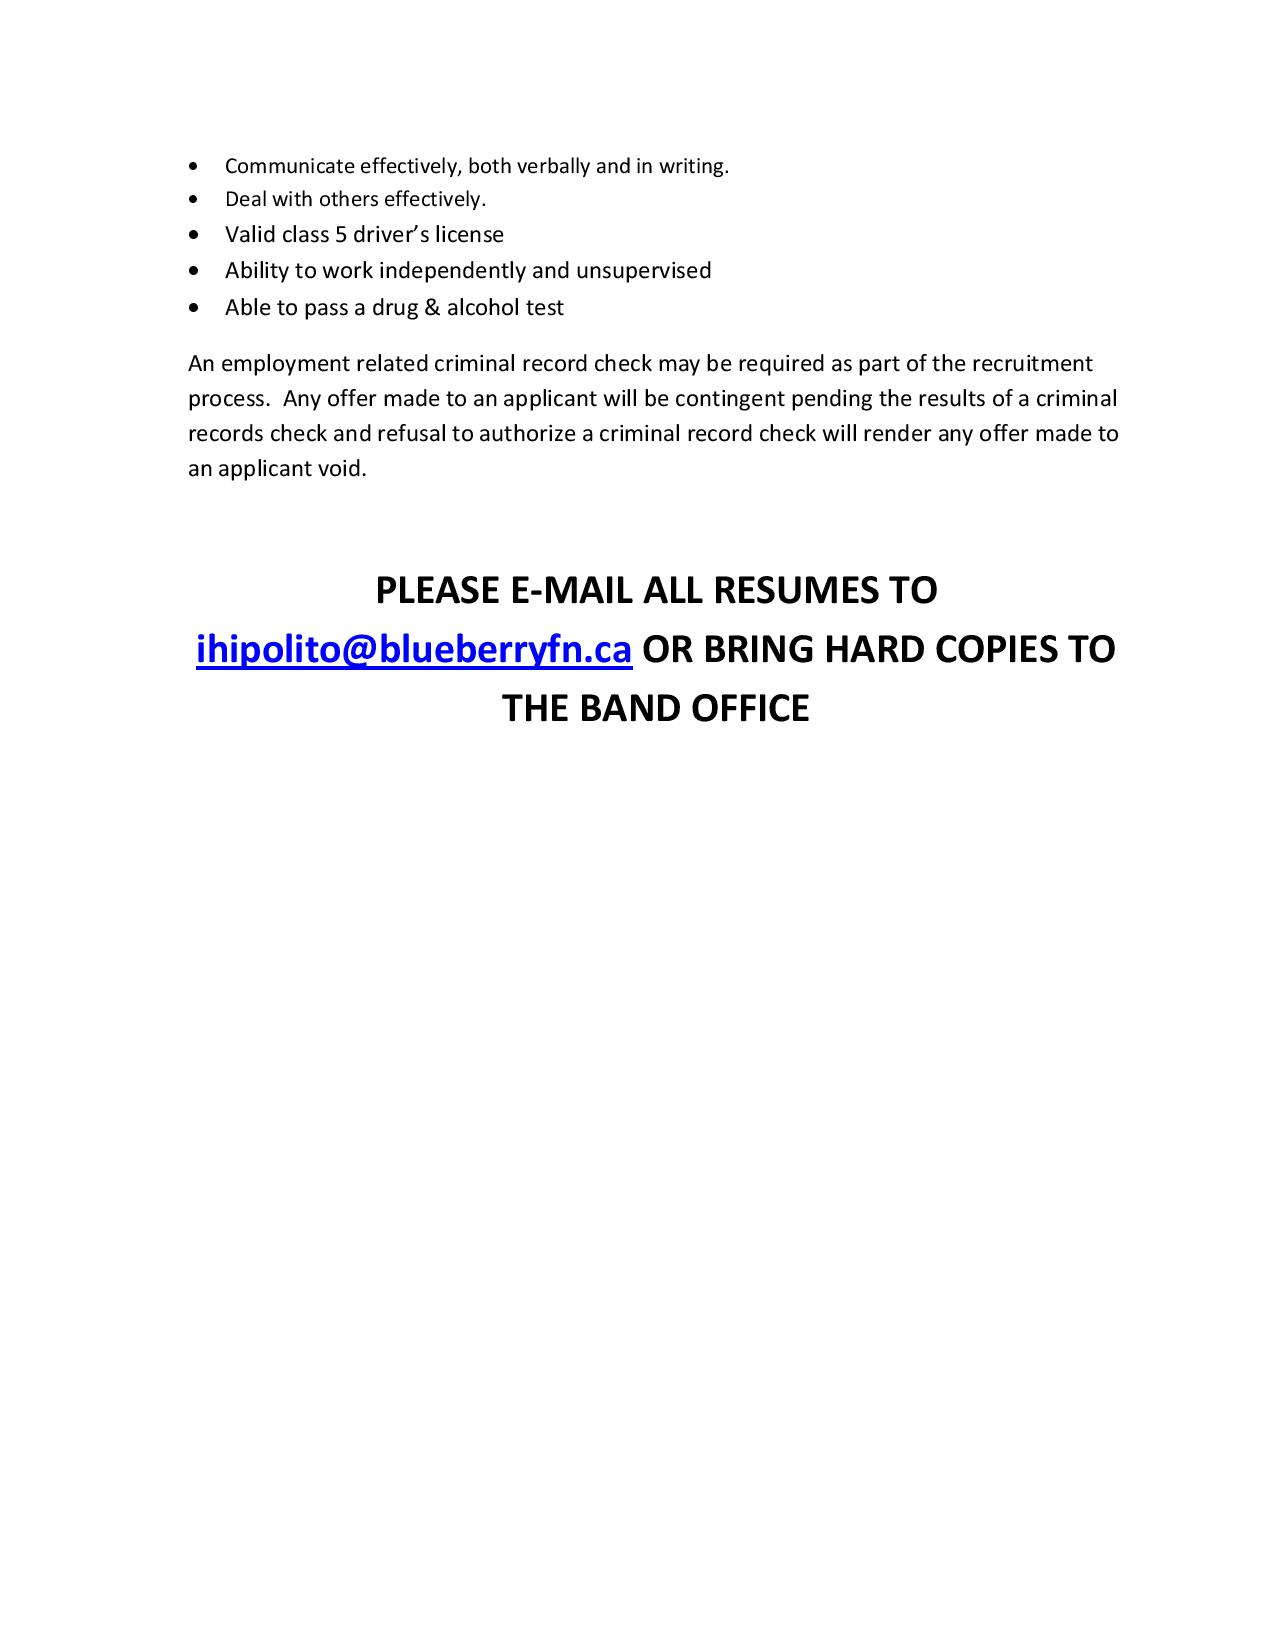 Lands administrative assistant - JD-page-002